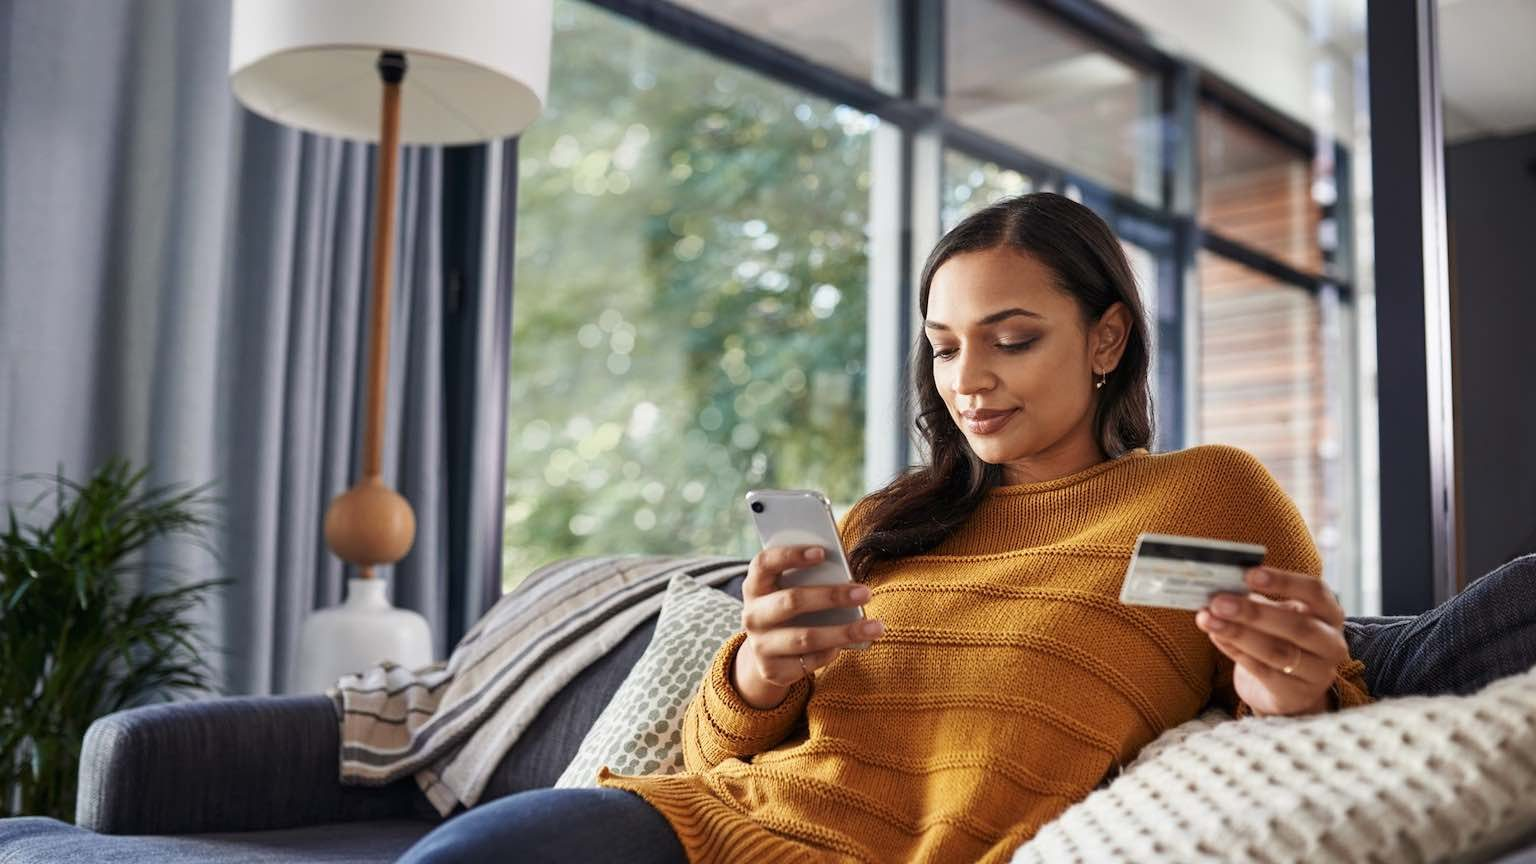 Lady sitting on couch, online shopping on smartphone with credit card.